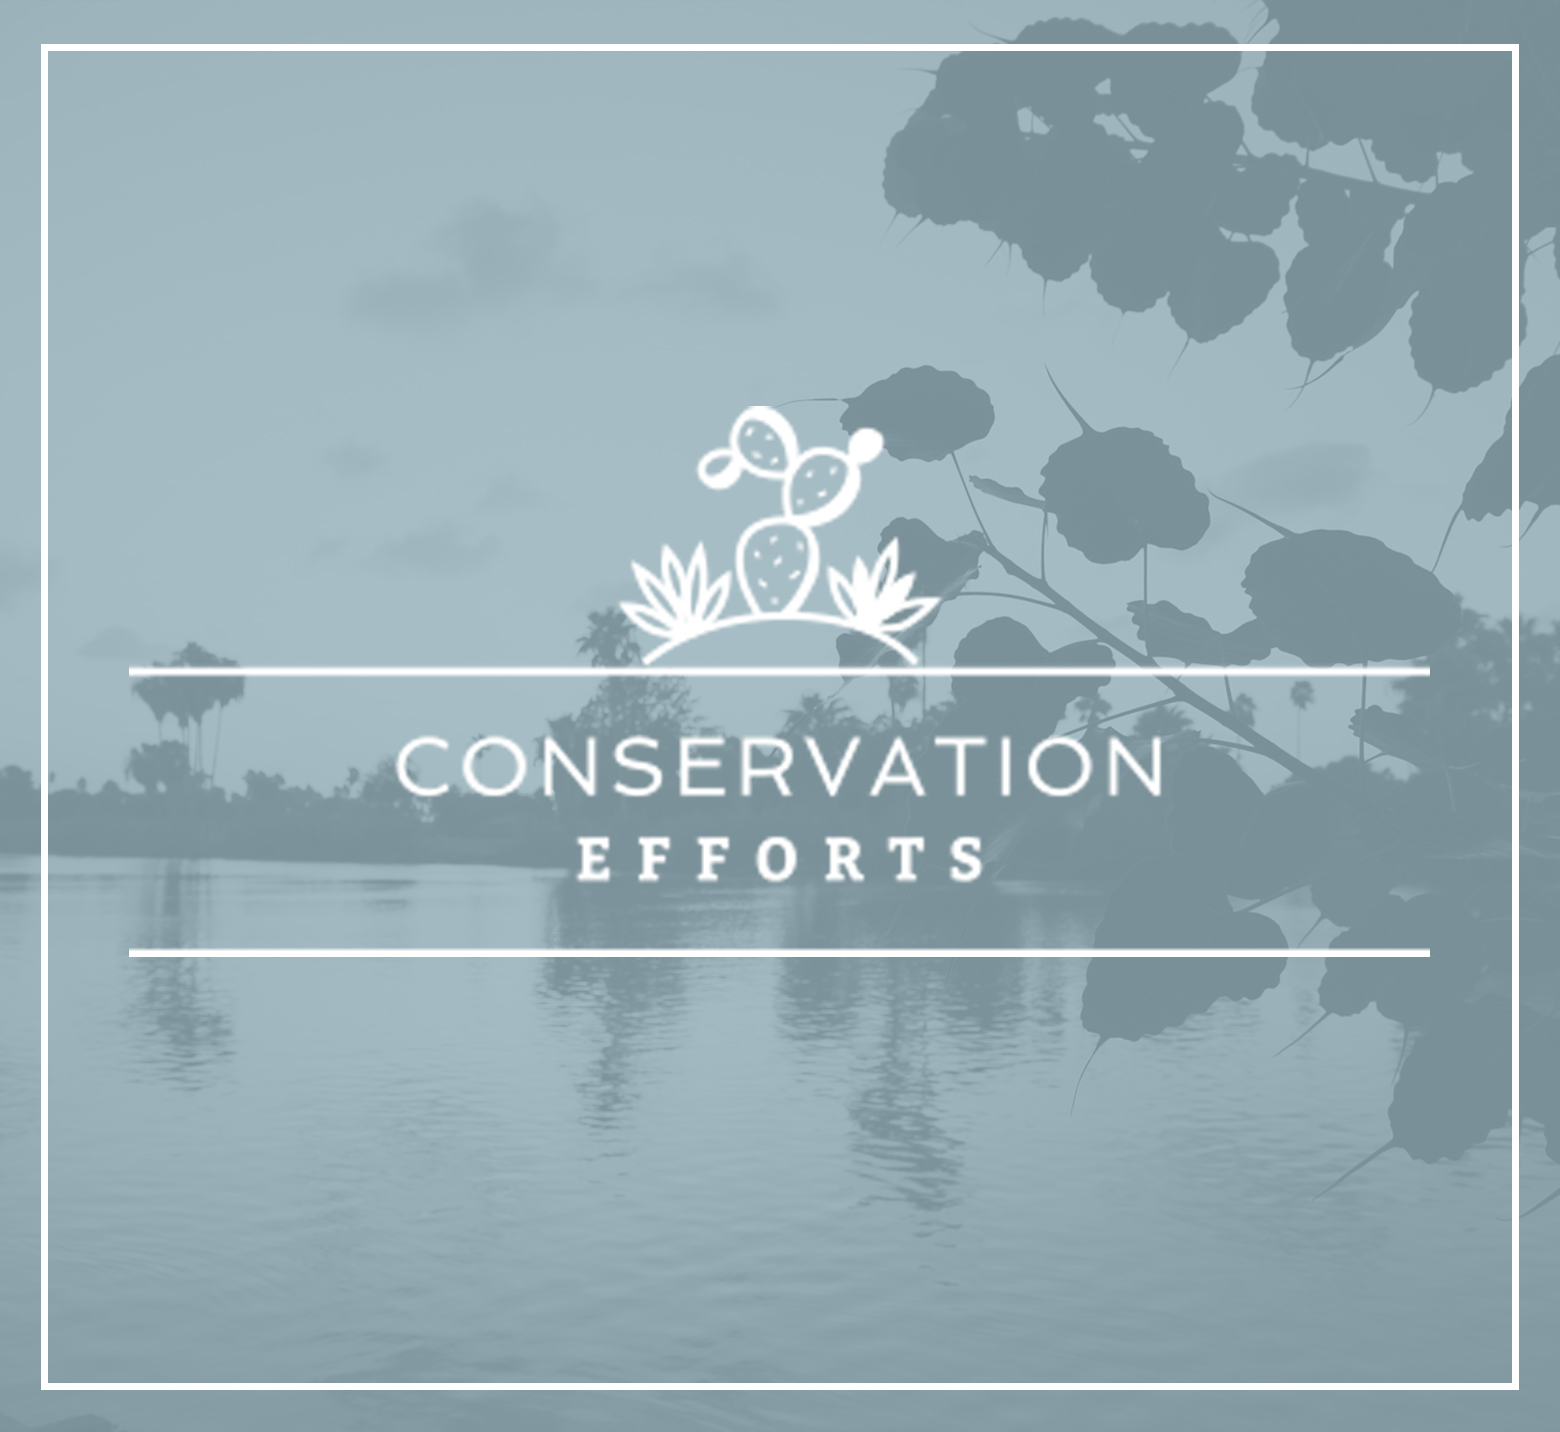 CONSERVATION-EFFORTS